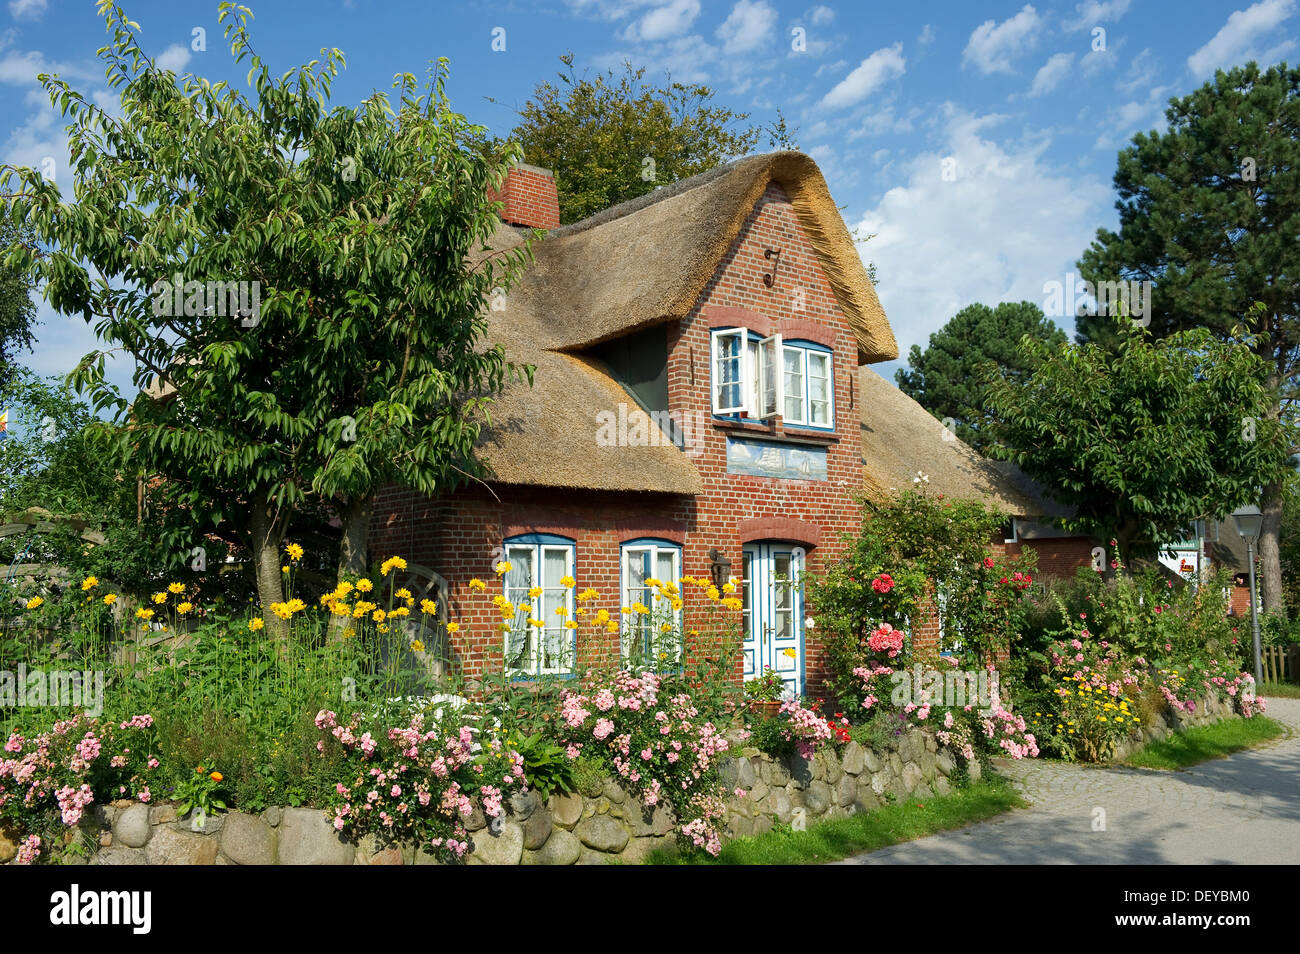 Thatched cottage and cottage garden, Nebel, Amrum, North Frisian Islands, Schleswig-Holstein - Stock Image